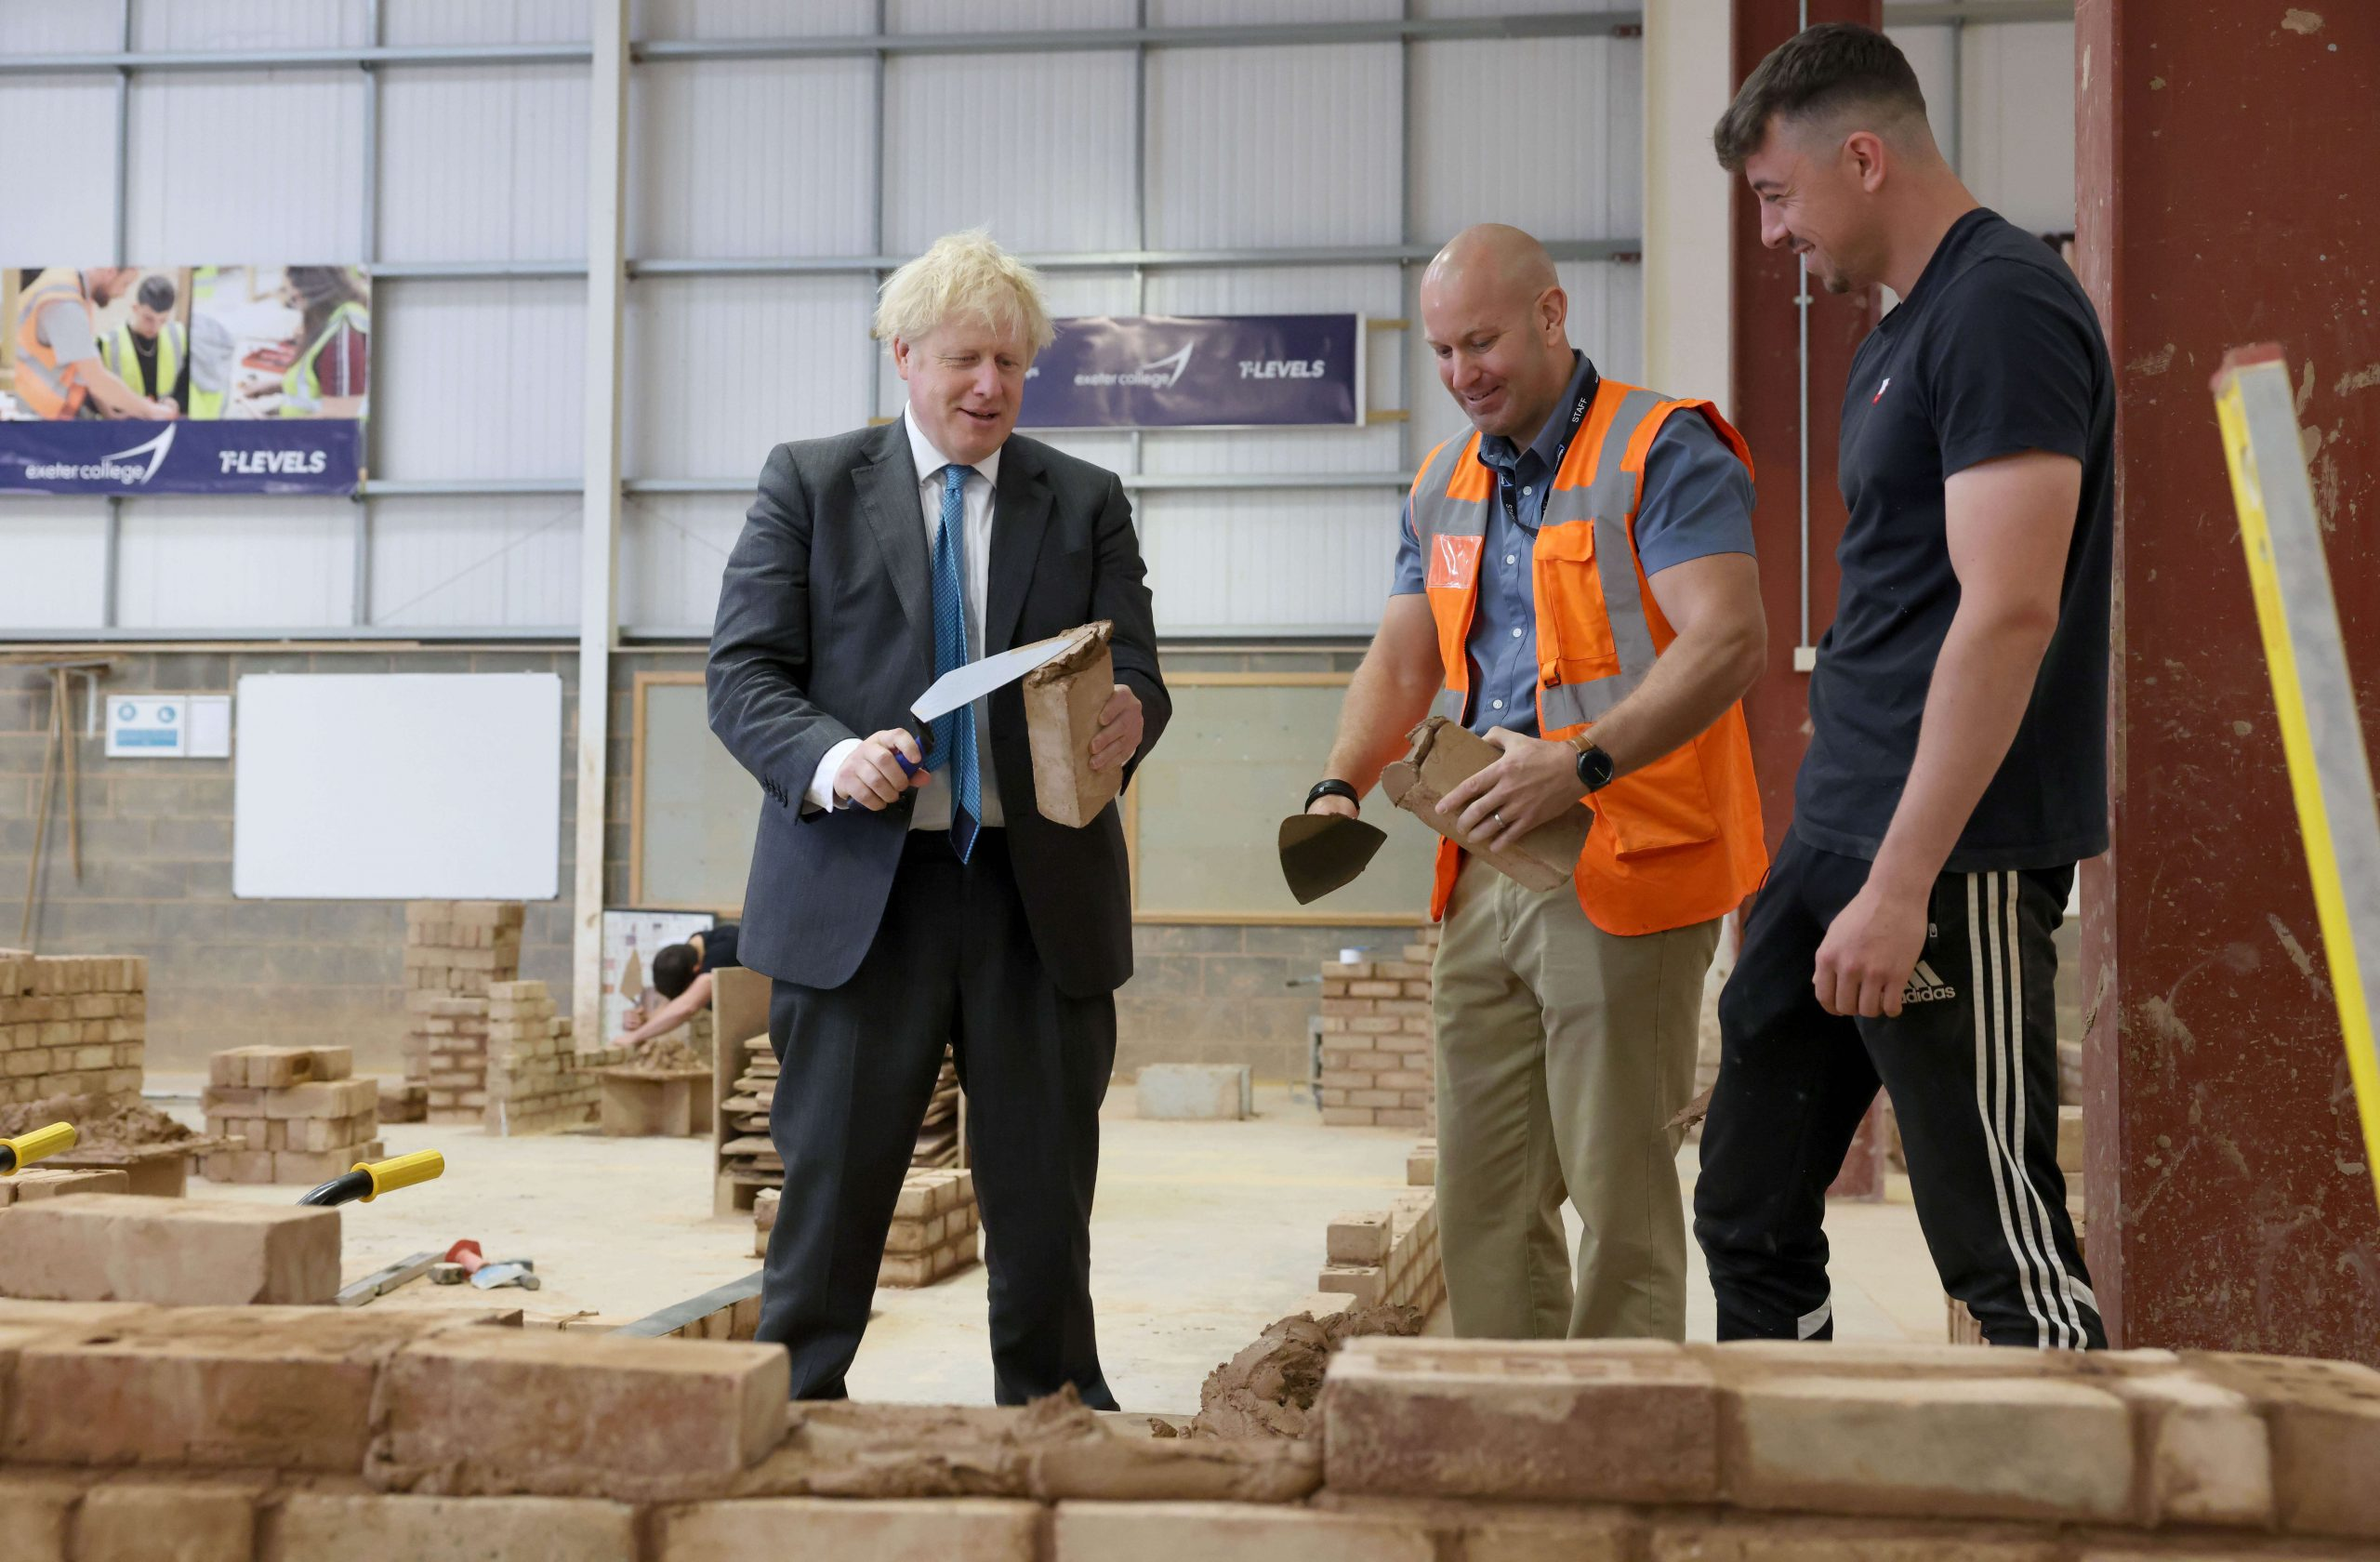 Boris Johnson visits the Exeter College Construction Centre. Picture by Andrew Parsons / No 10 Downing Street